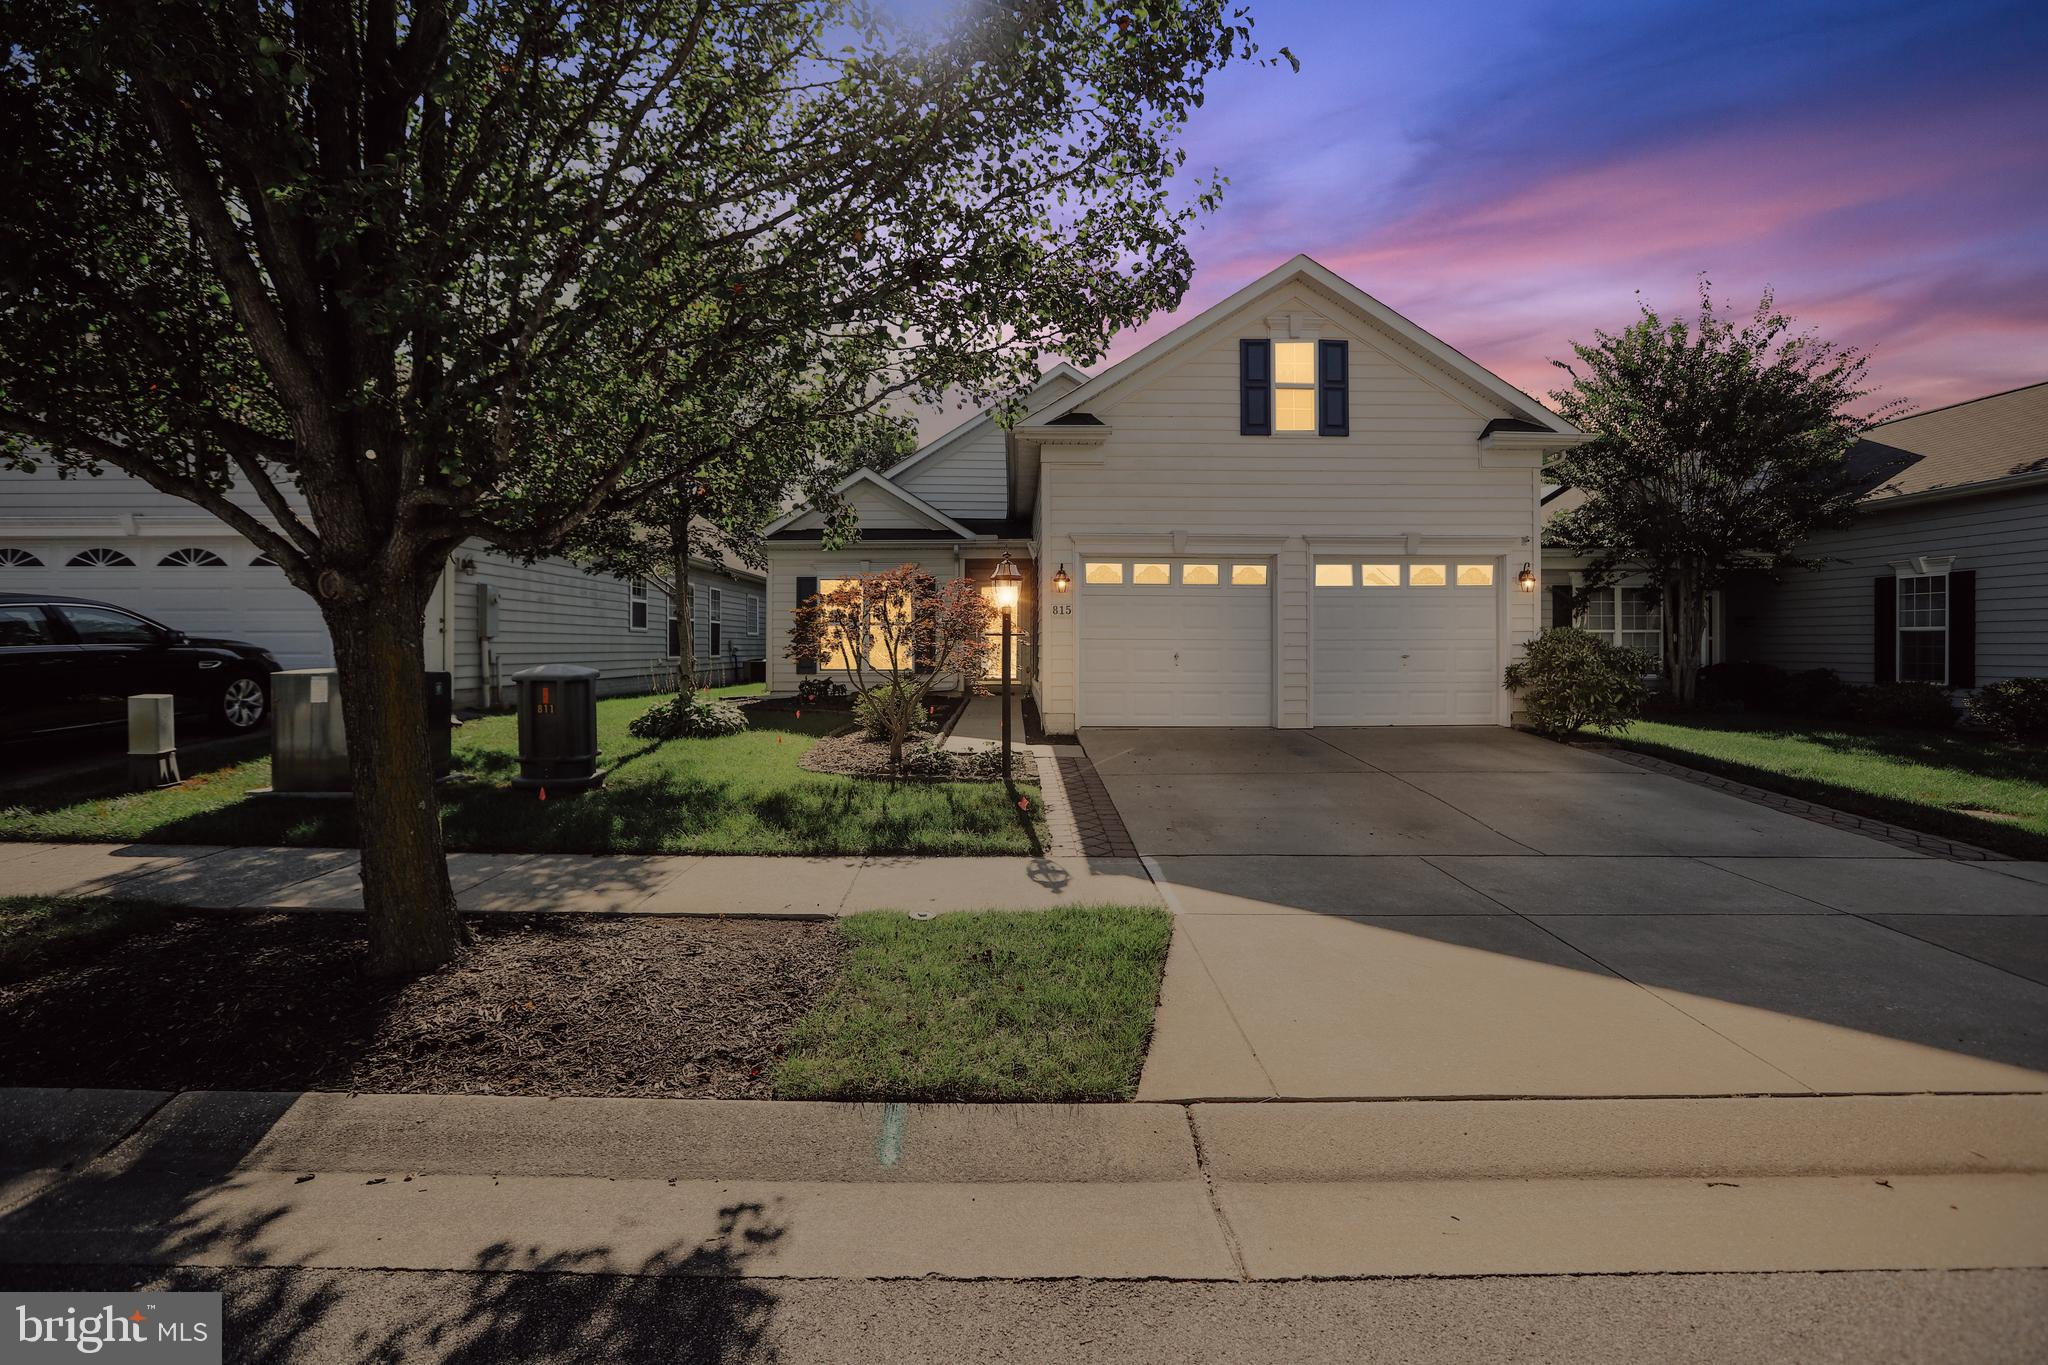 Finally! A  home with SUNROOM addition, OFFICE addition, sky basement, AND a private backyard is on the market in Symphony Village.  This house has it all! The additions maximize natural sunlight with fabulous windows.  A kitchen with ample cabinets, pantry, and counter space will make cooking  enjoyable again. Your owner's suite boasts his and her closets. Your Owner Bathroom has a corner soaking tub with a walk-in shower. The thought-out floorplan is evident as the two guest bedrooms are on the other side of the house, with their guest bathroom.  Social distancing is easy on your custom stone patio, designed with privacy in mind.  Symphony Village is a 55+ community designed around you. For the active: Fitness center, aerobics, dance studio, tennis courts, bocce ball courts,  putting green. Are you looking for social opportunities?????   Music room, multiple activity rooms, billiards room, library,  community flower garden, crafts. You will see your neighbors playing badminton, horseshoes, or lounging around one of two pools. One indoor, one outdoor. Symphony Village allows you to vacation where you live.  This house will not last! Make sure to click on the tour link and view the Interactive Floor Plan.